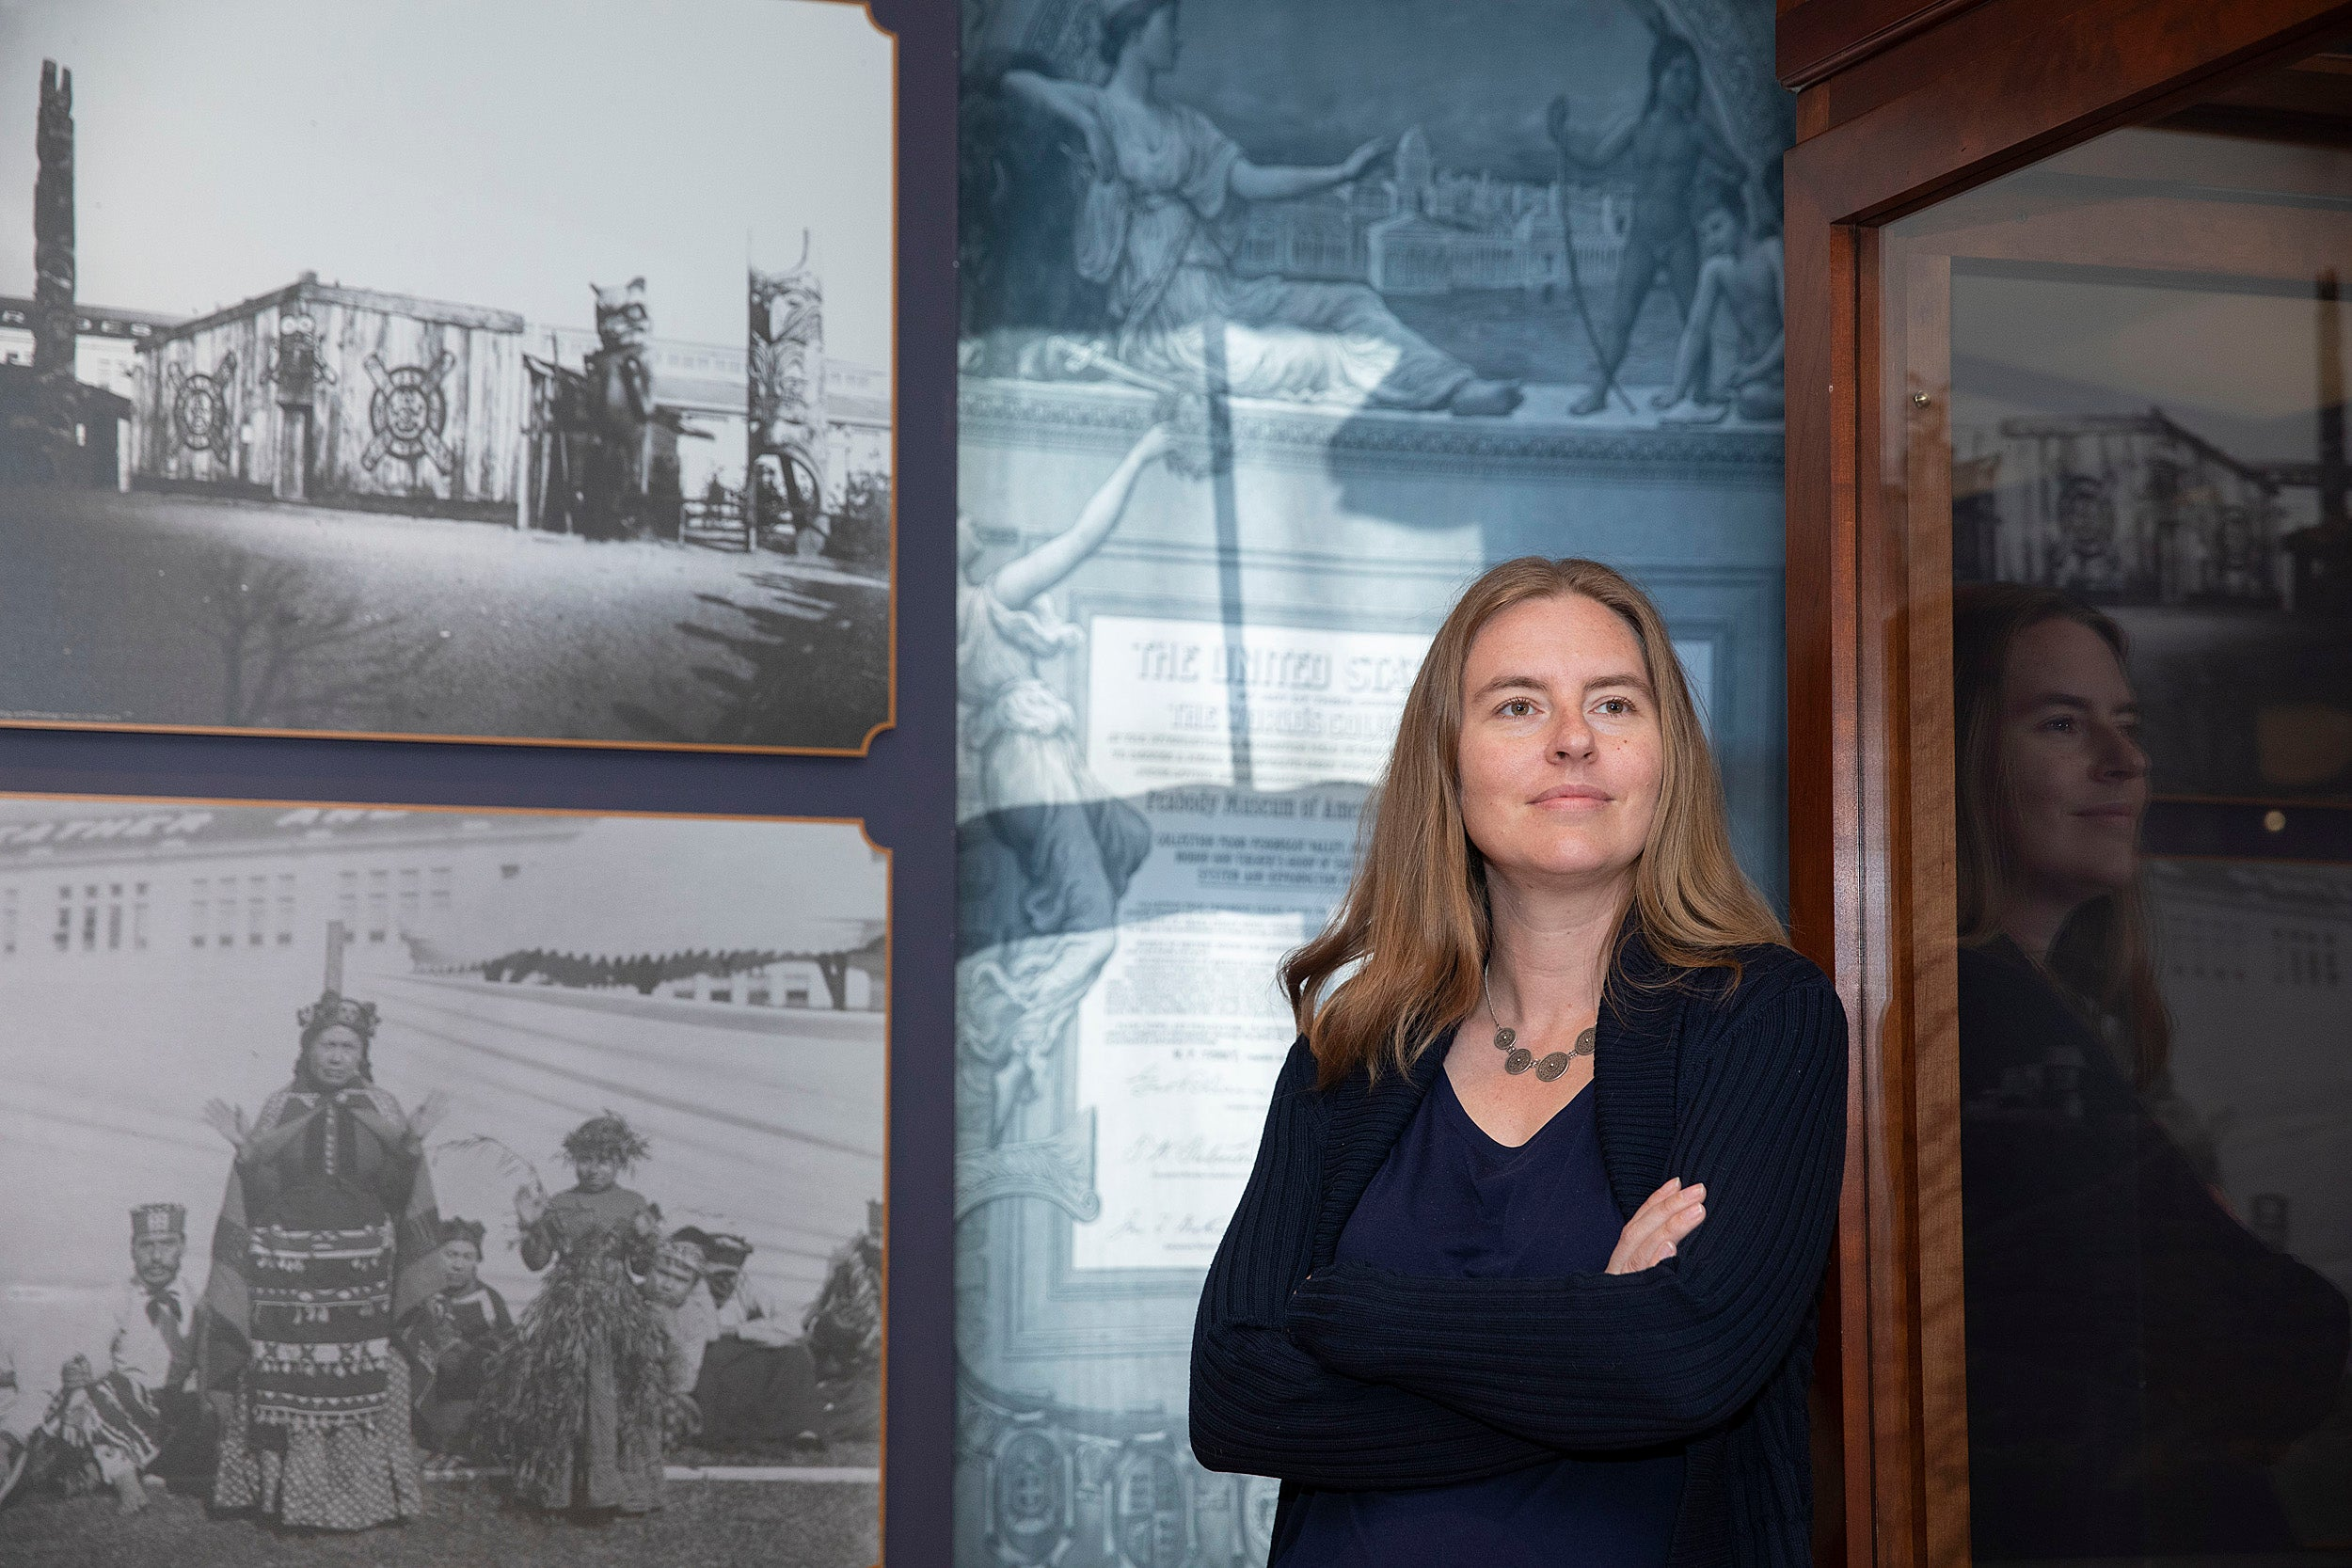 Christina Warinner is a new faculty member photographed in front of a display at the Peabody Museum.